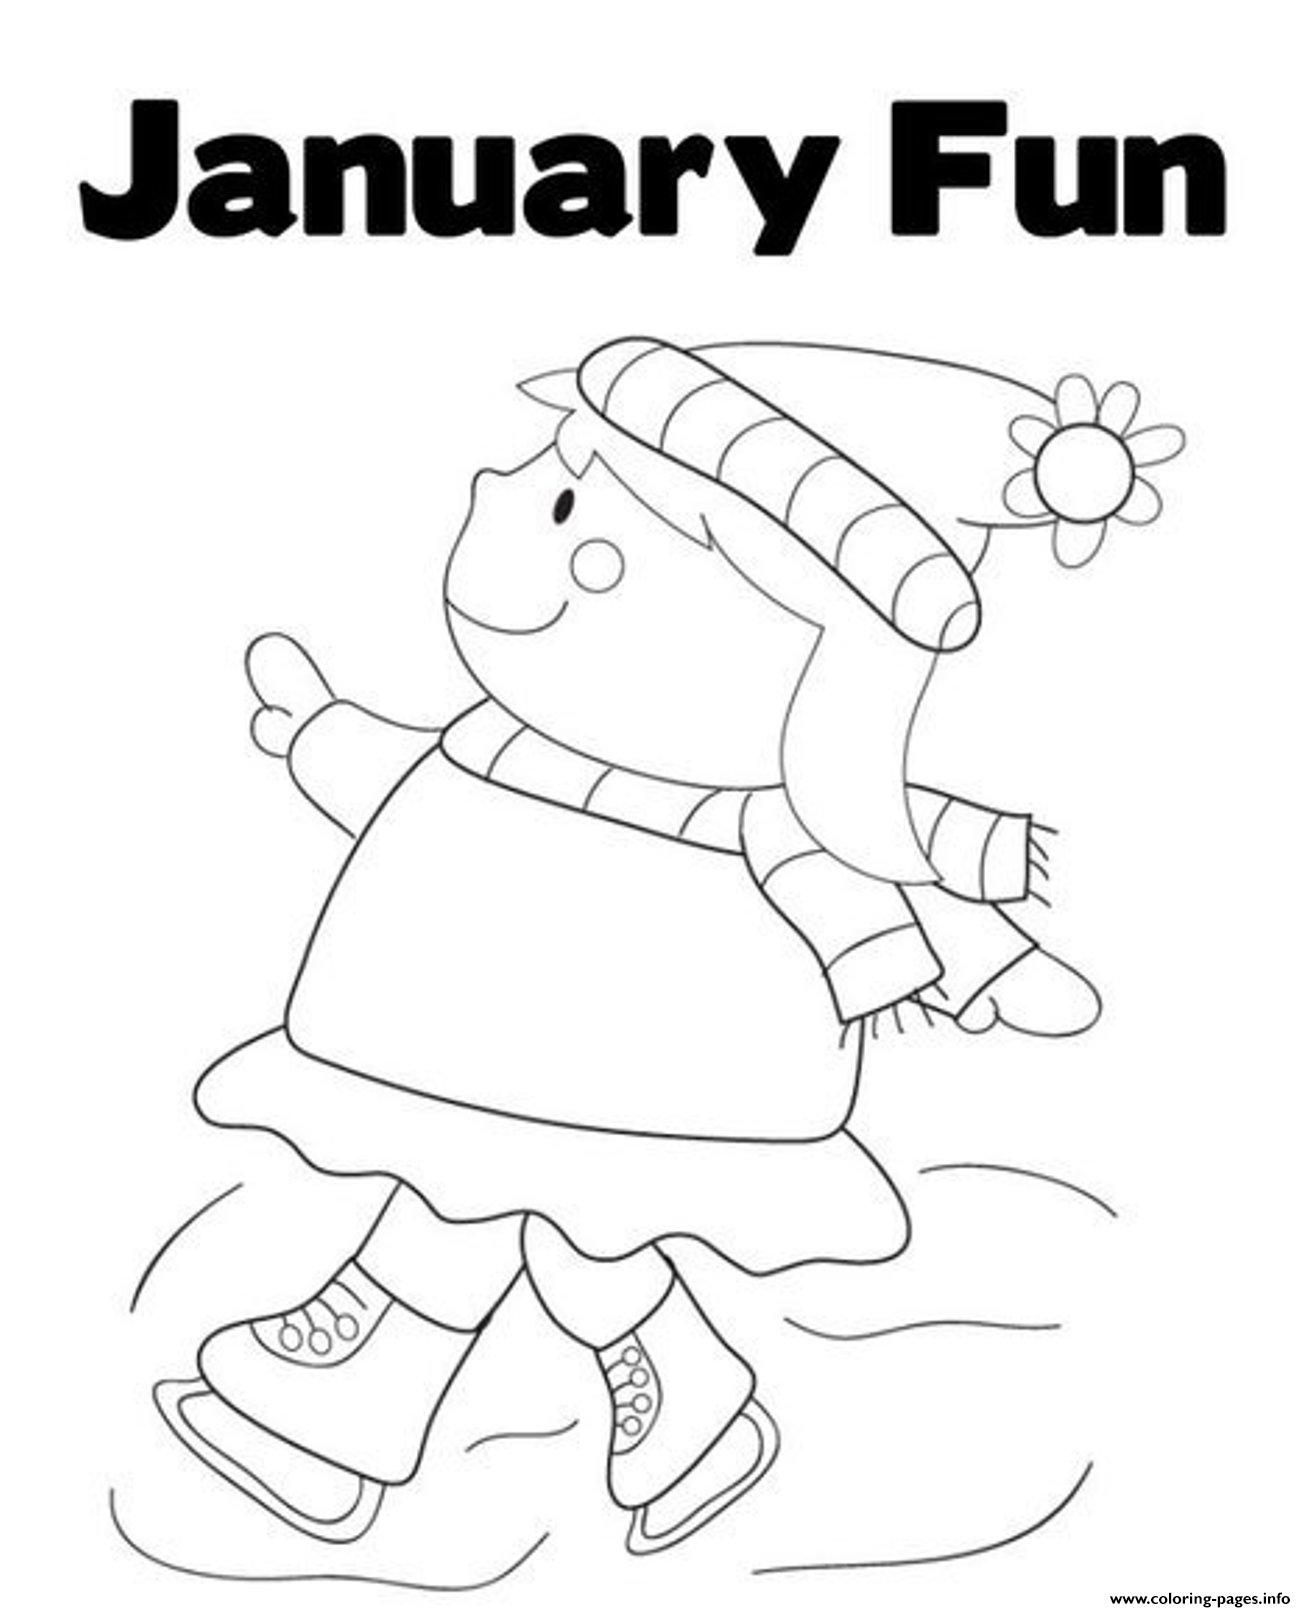 Winter S Printable January Fund743 Coloring Pages Printable